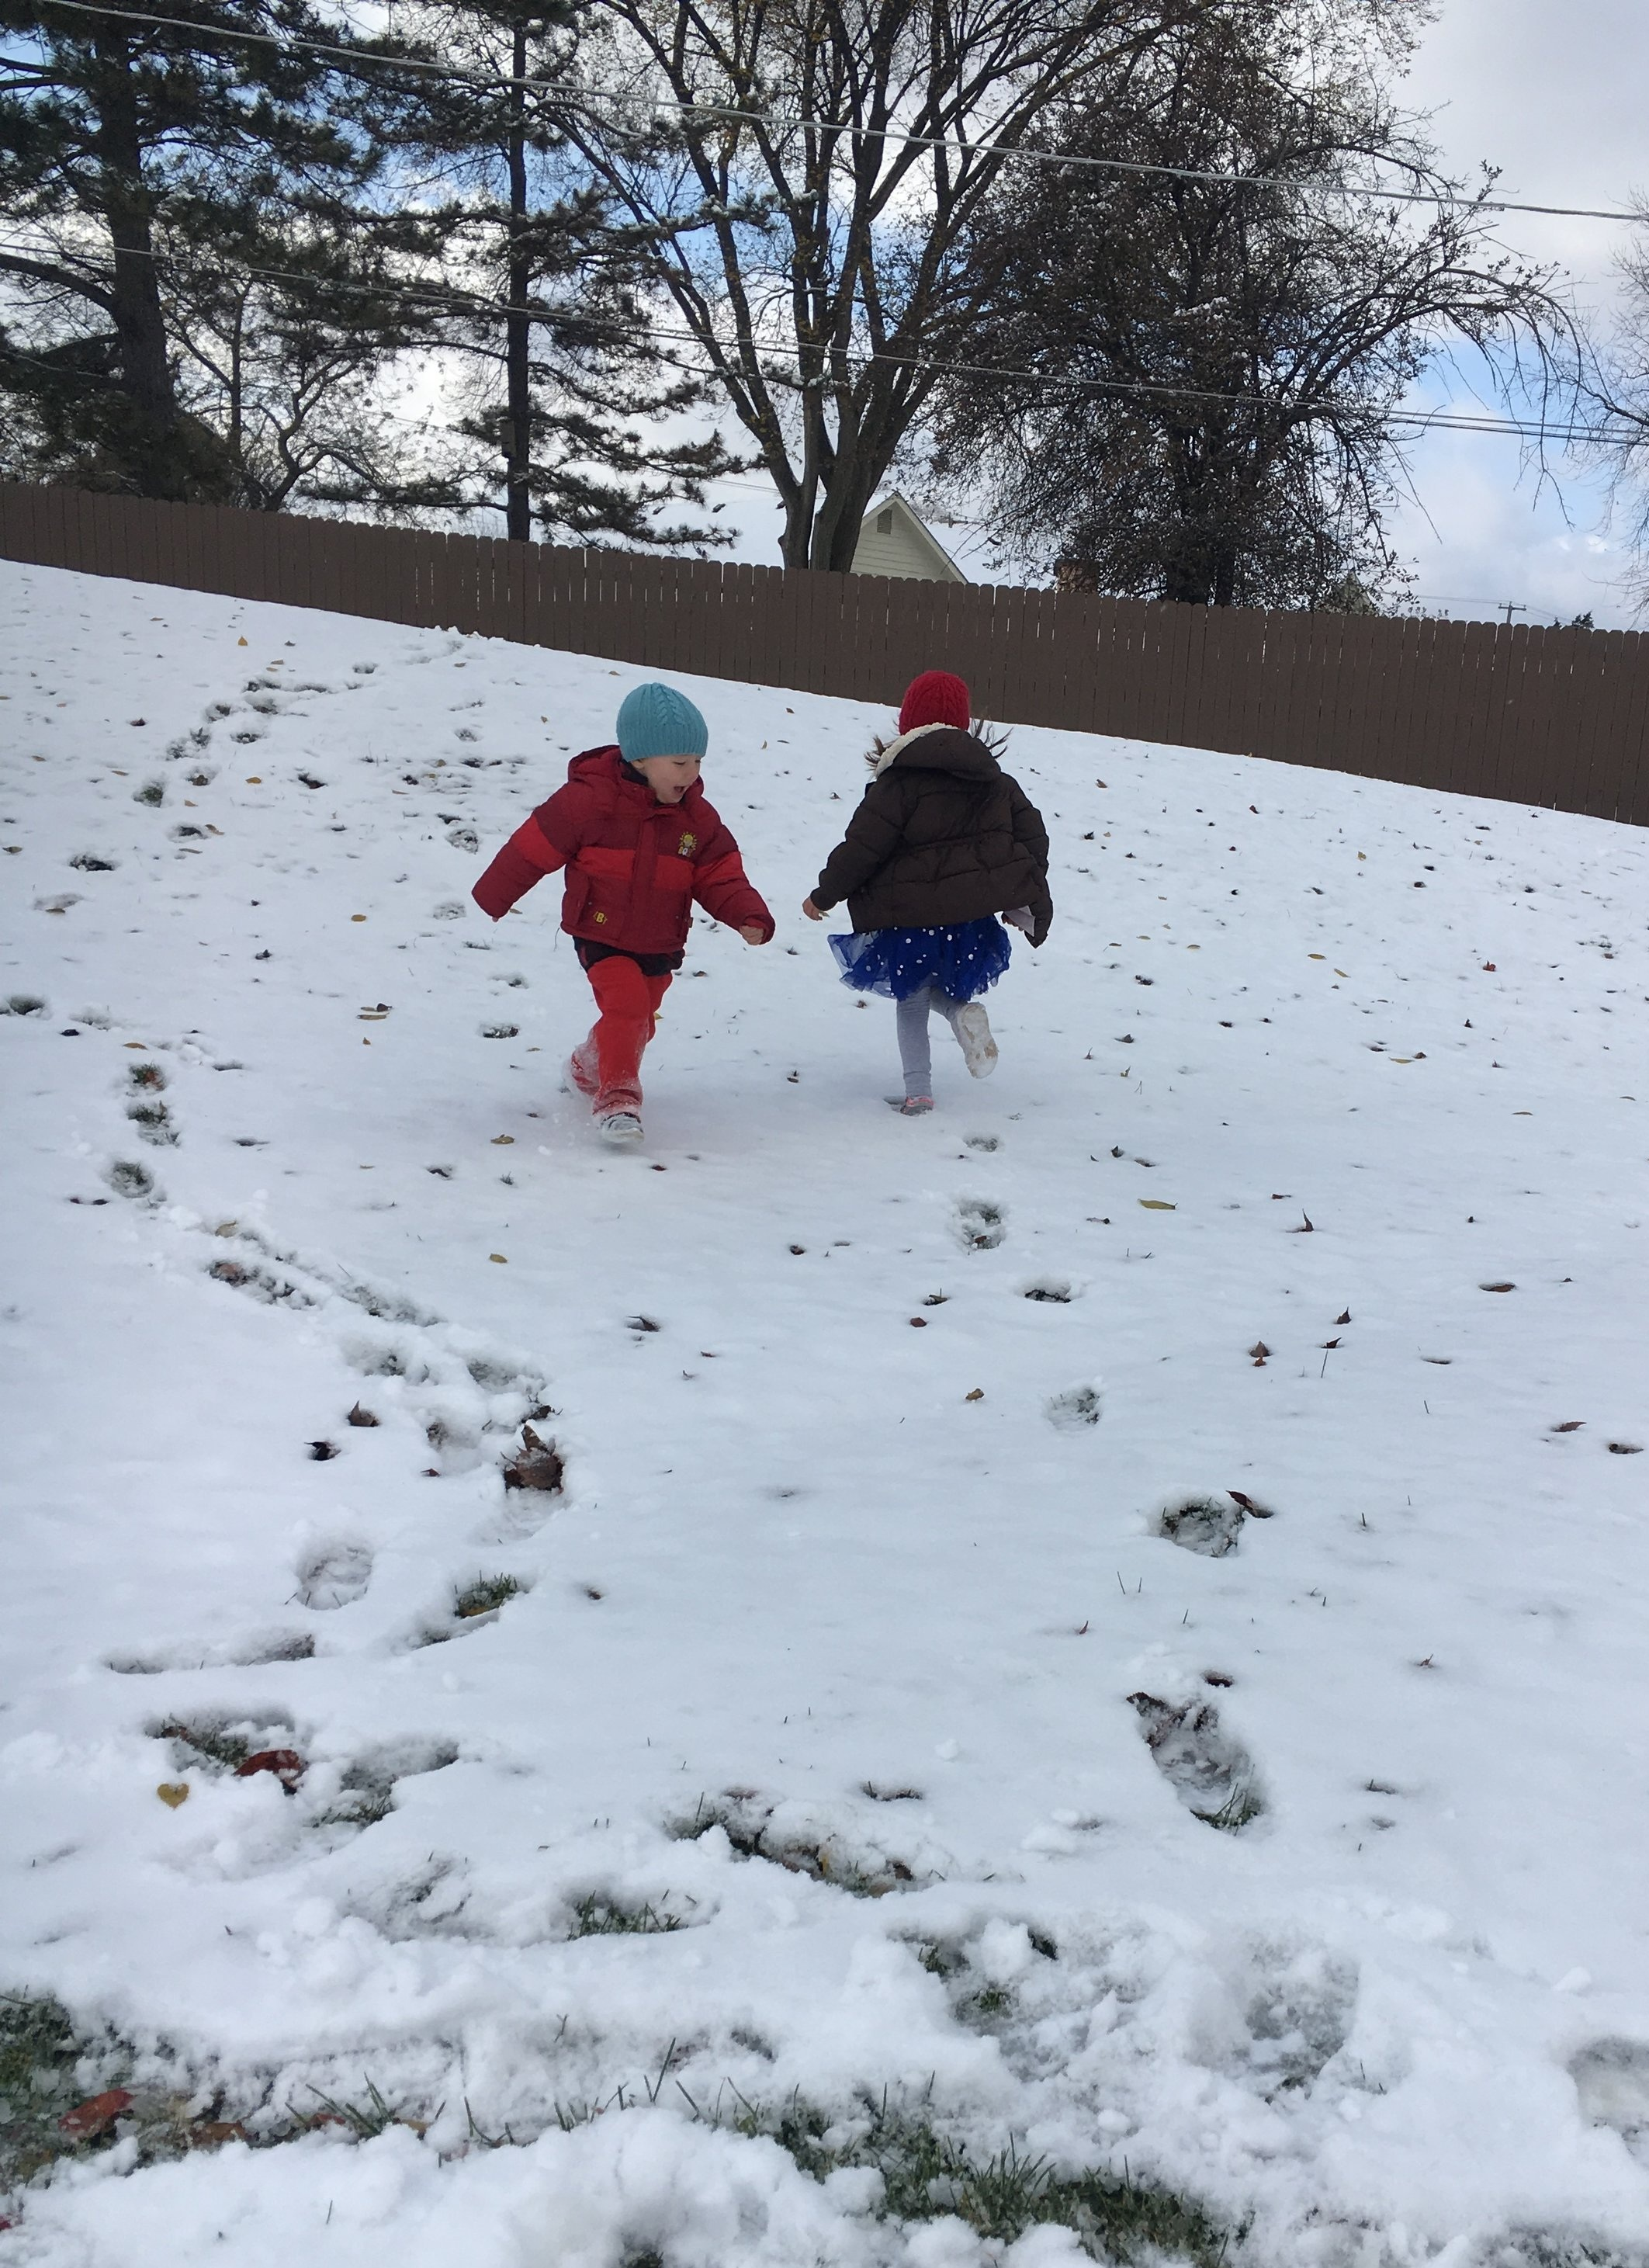 Running in circles in the snow…for days